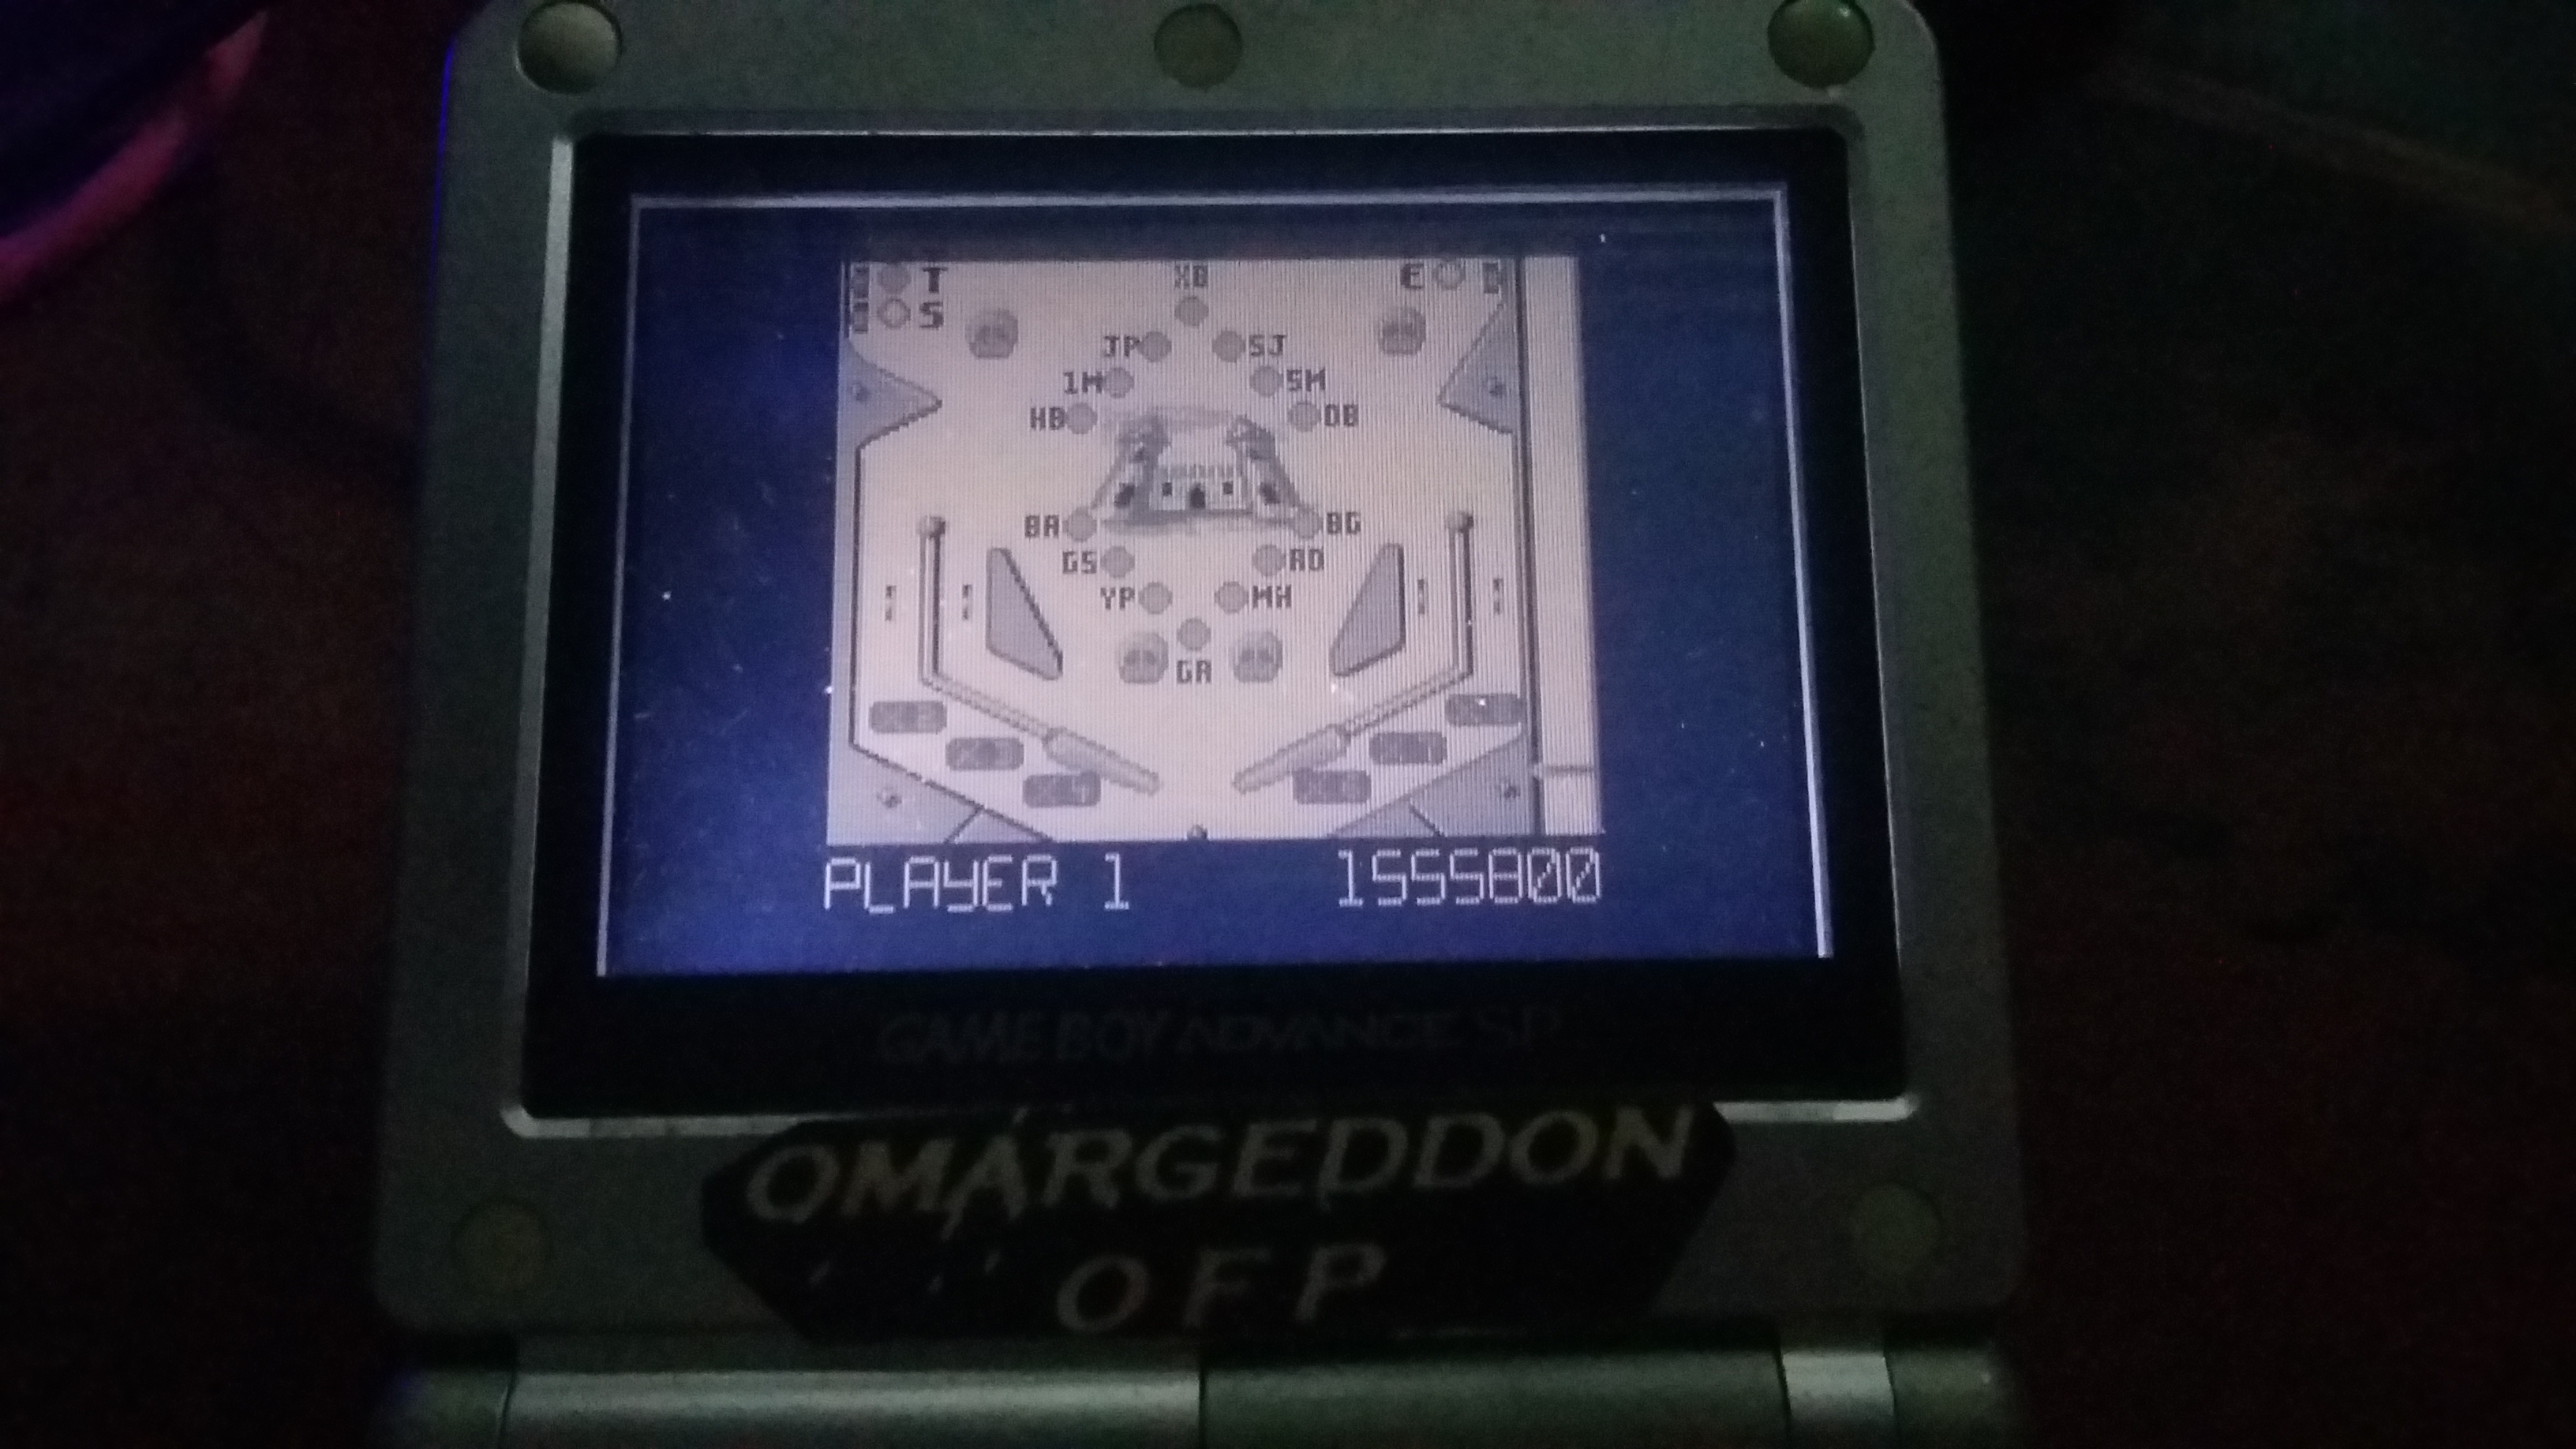 omargeddon: Pinball Fantasies: Stones N Bones (Game Boy) 1,555,800 points on 2018-10-25 03:11:00